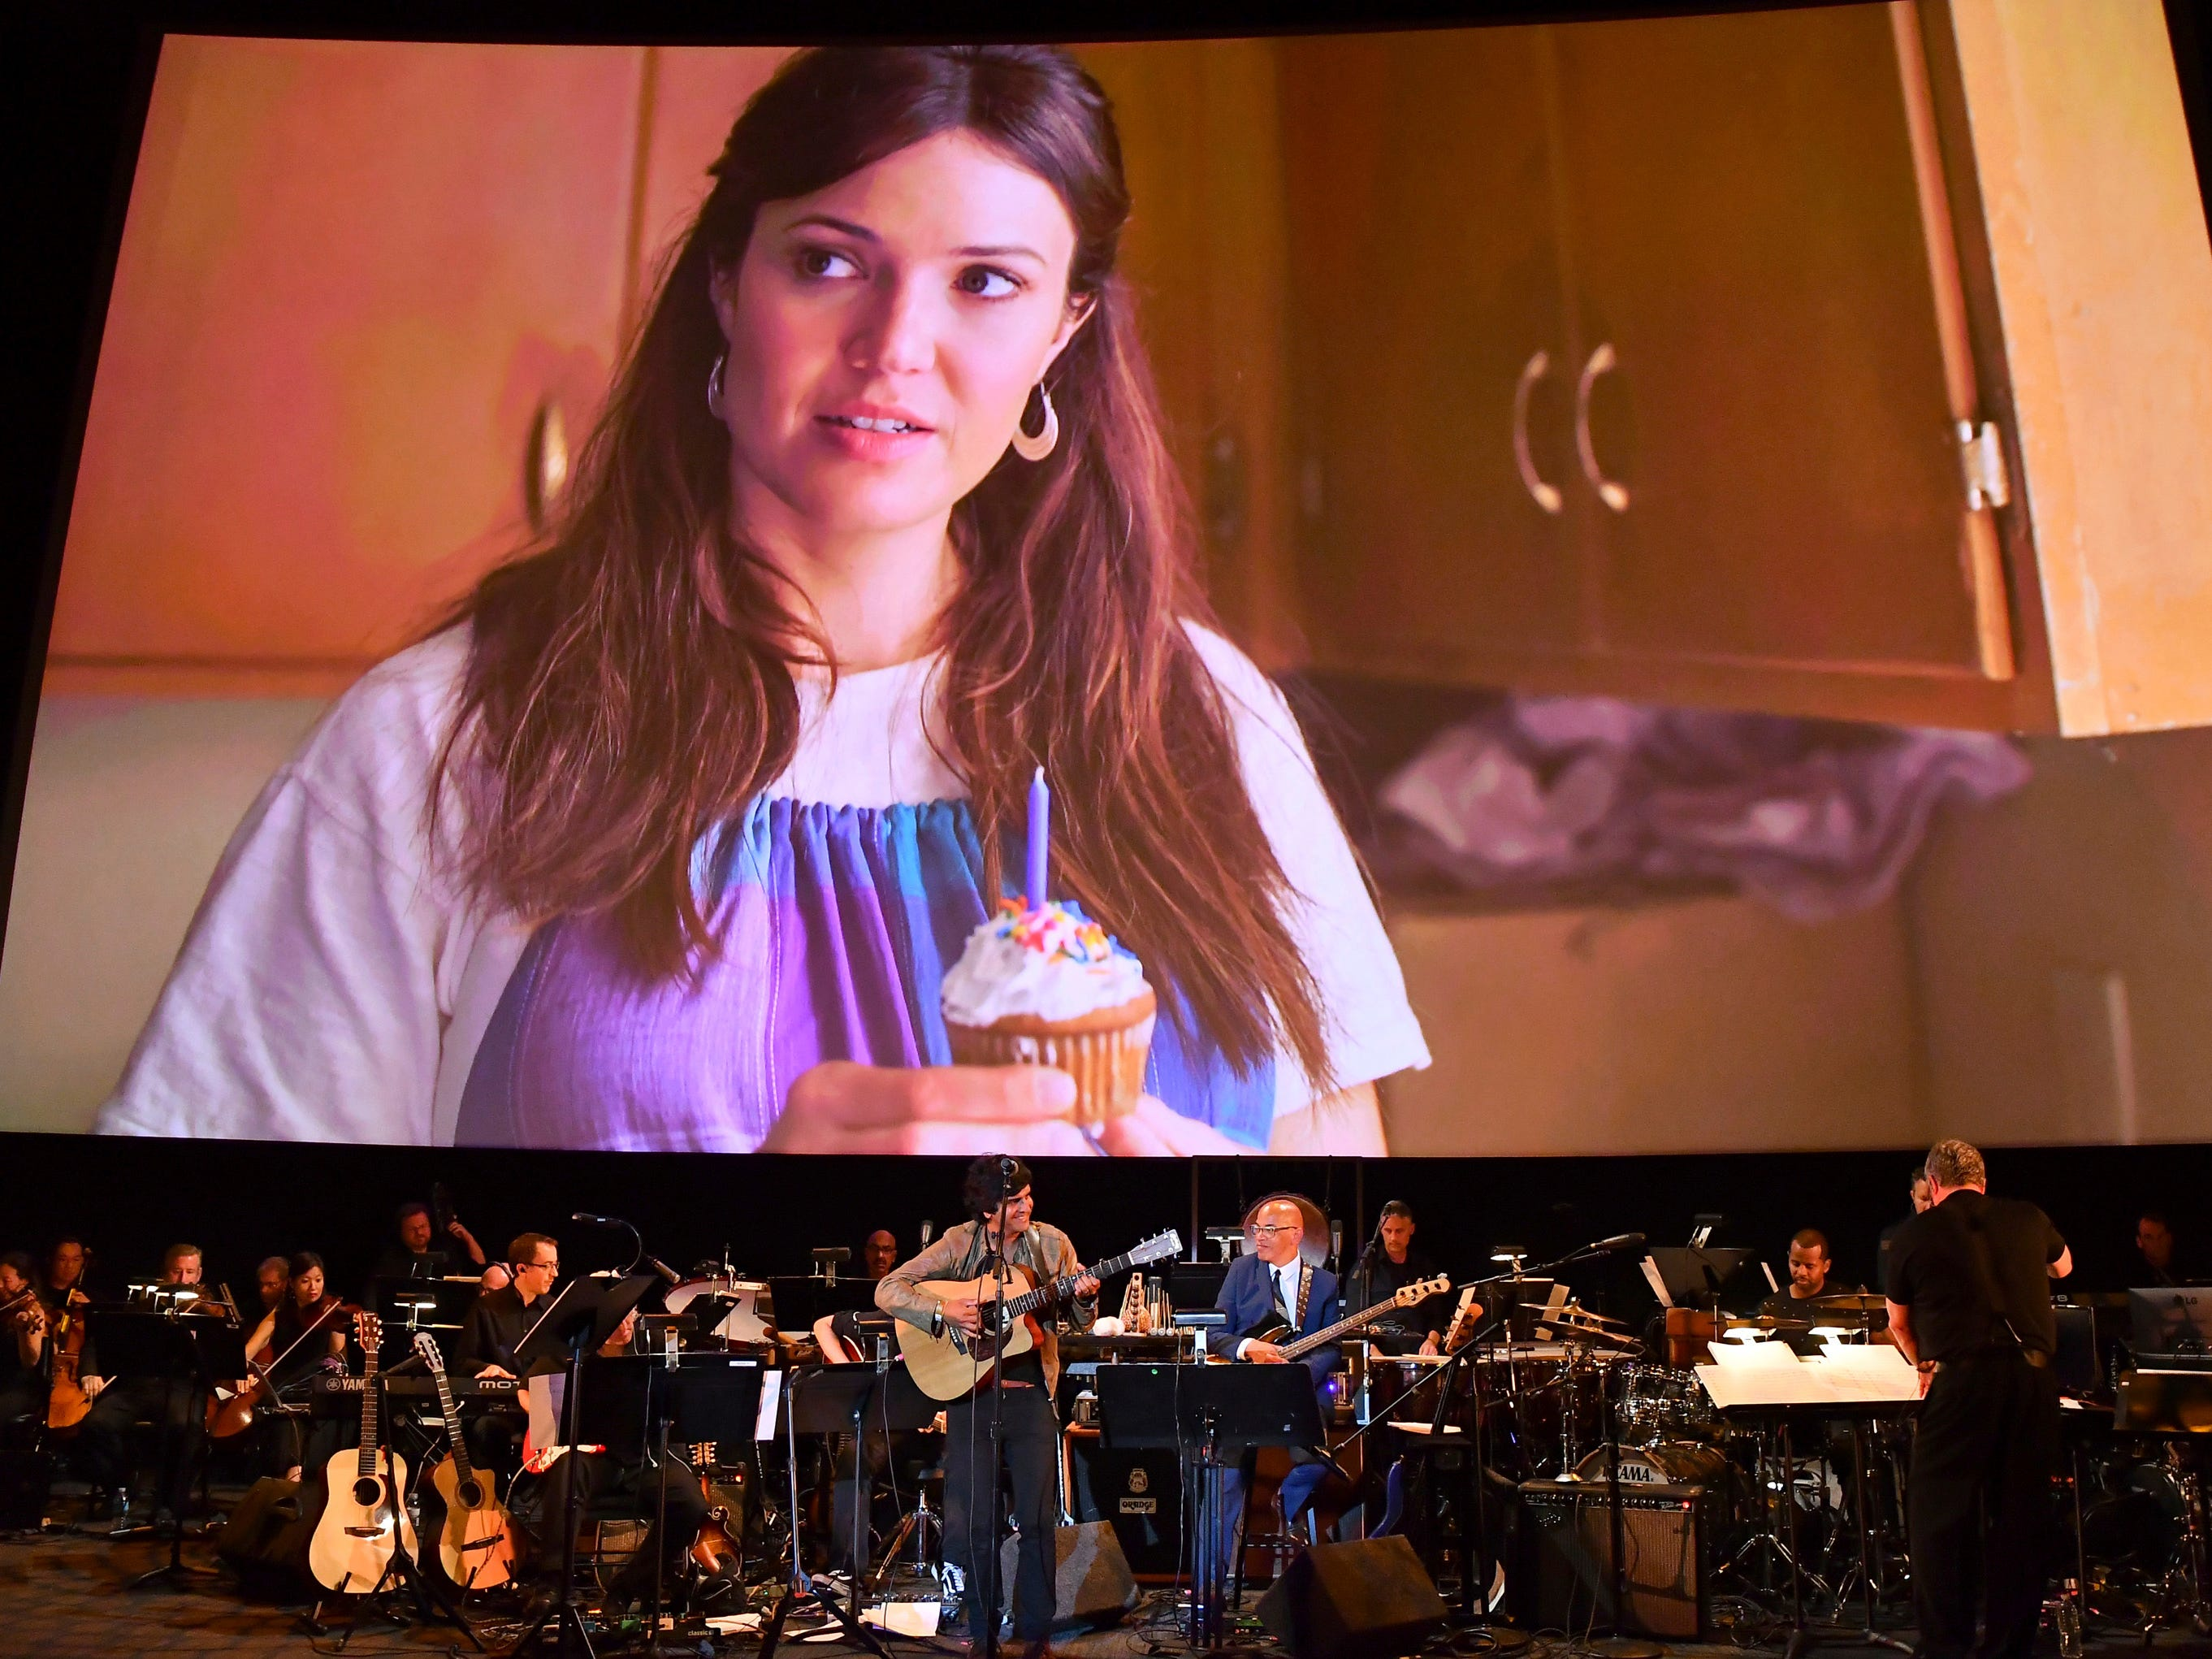 Conductor Mark Watters, right, and composer Siddhartha Khosla, center, perform the score from This Is Us during WORDS + MUSIC, presented Thursday, June 29, 2017 at the Television Academy's Wolf Theatre at the Saban Media Center in North Hollywood, Calif. Mandy Moore is pictured on screen. (Photo by Vince Bucci/Invision for the Television Academy/AP Images)